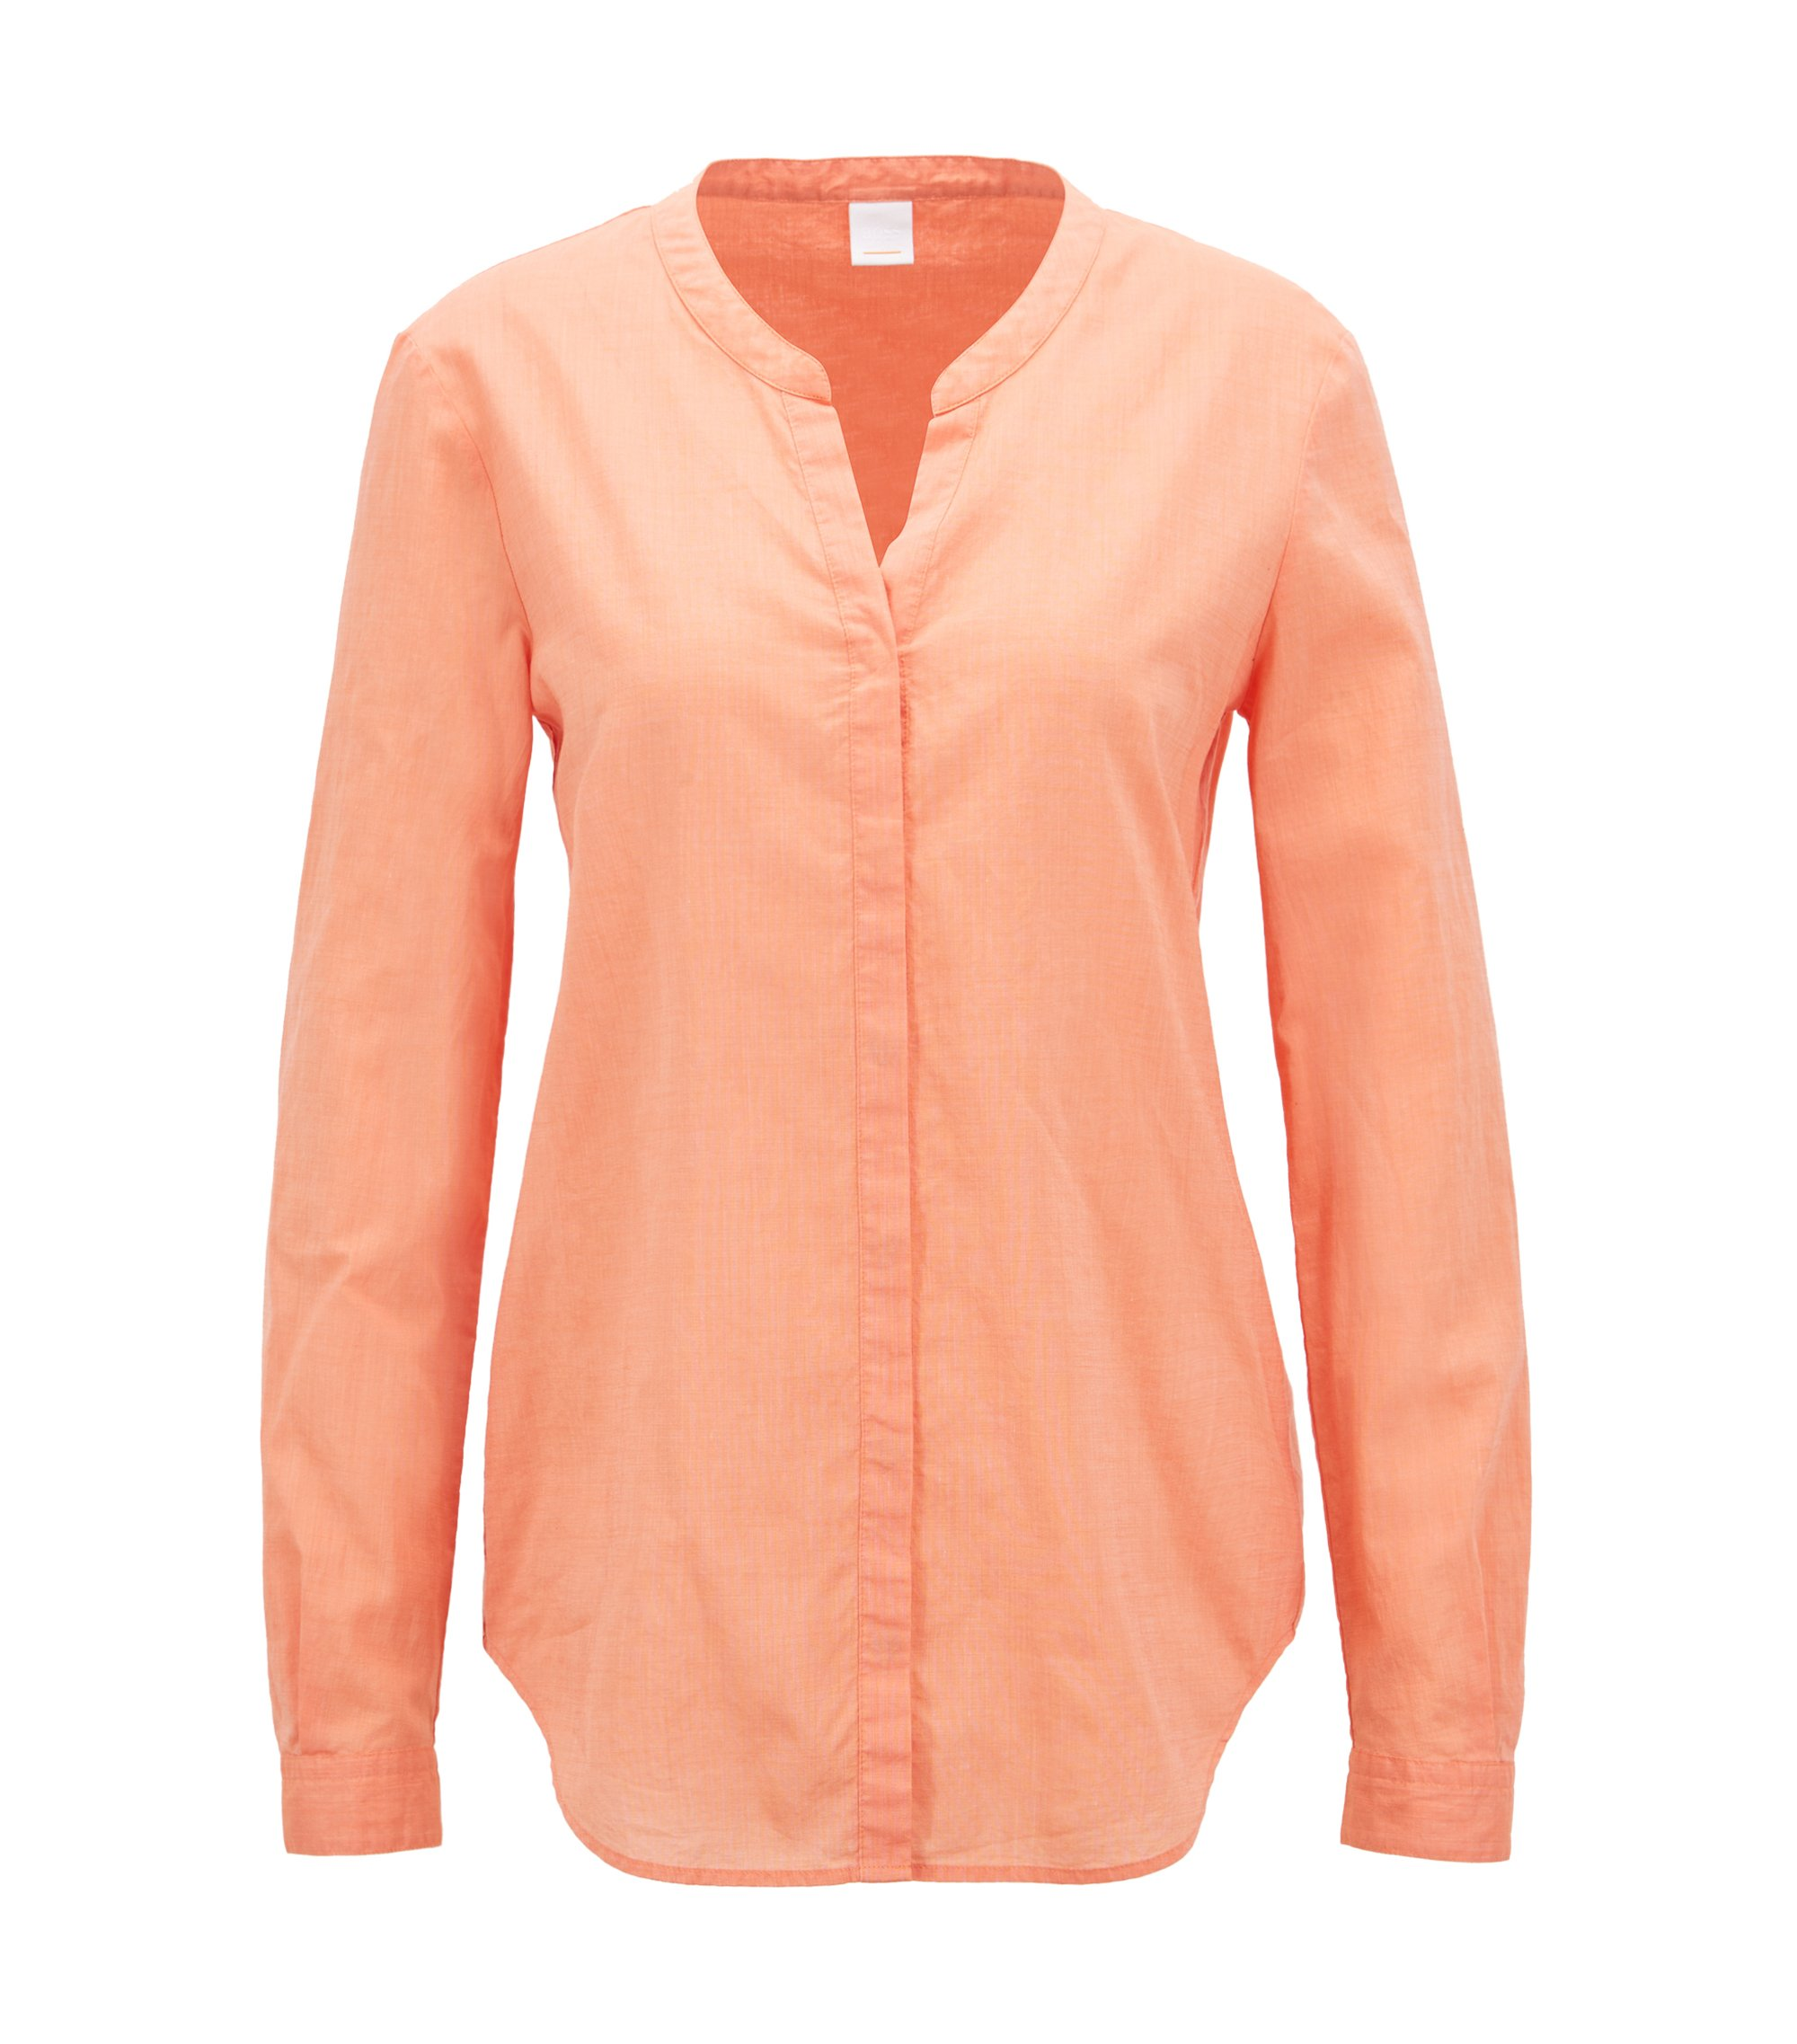 Chemisier Relaxed Fit en chambray de coton mélangé, Orange